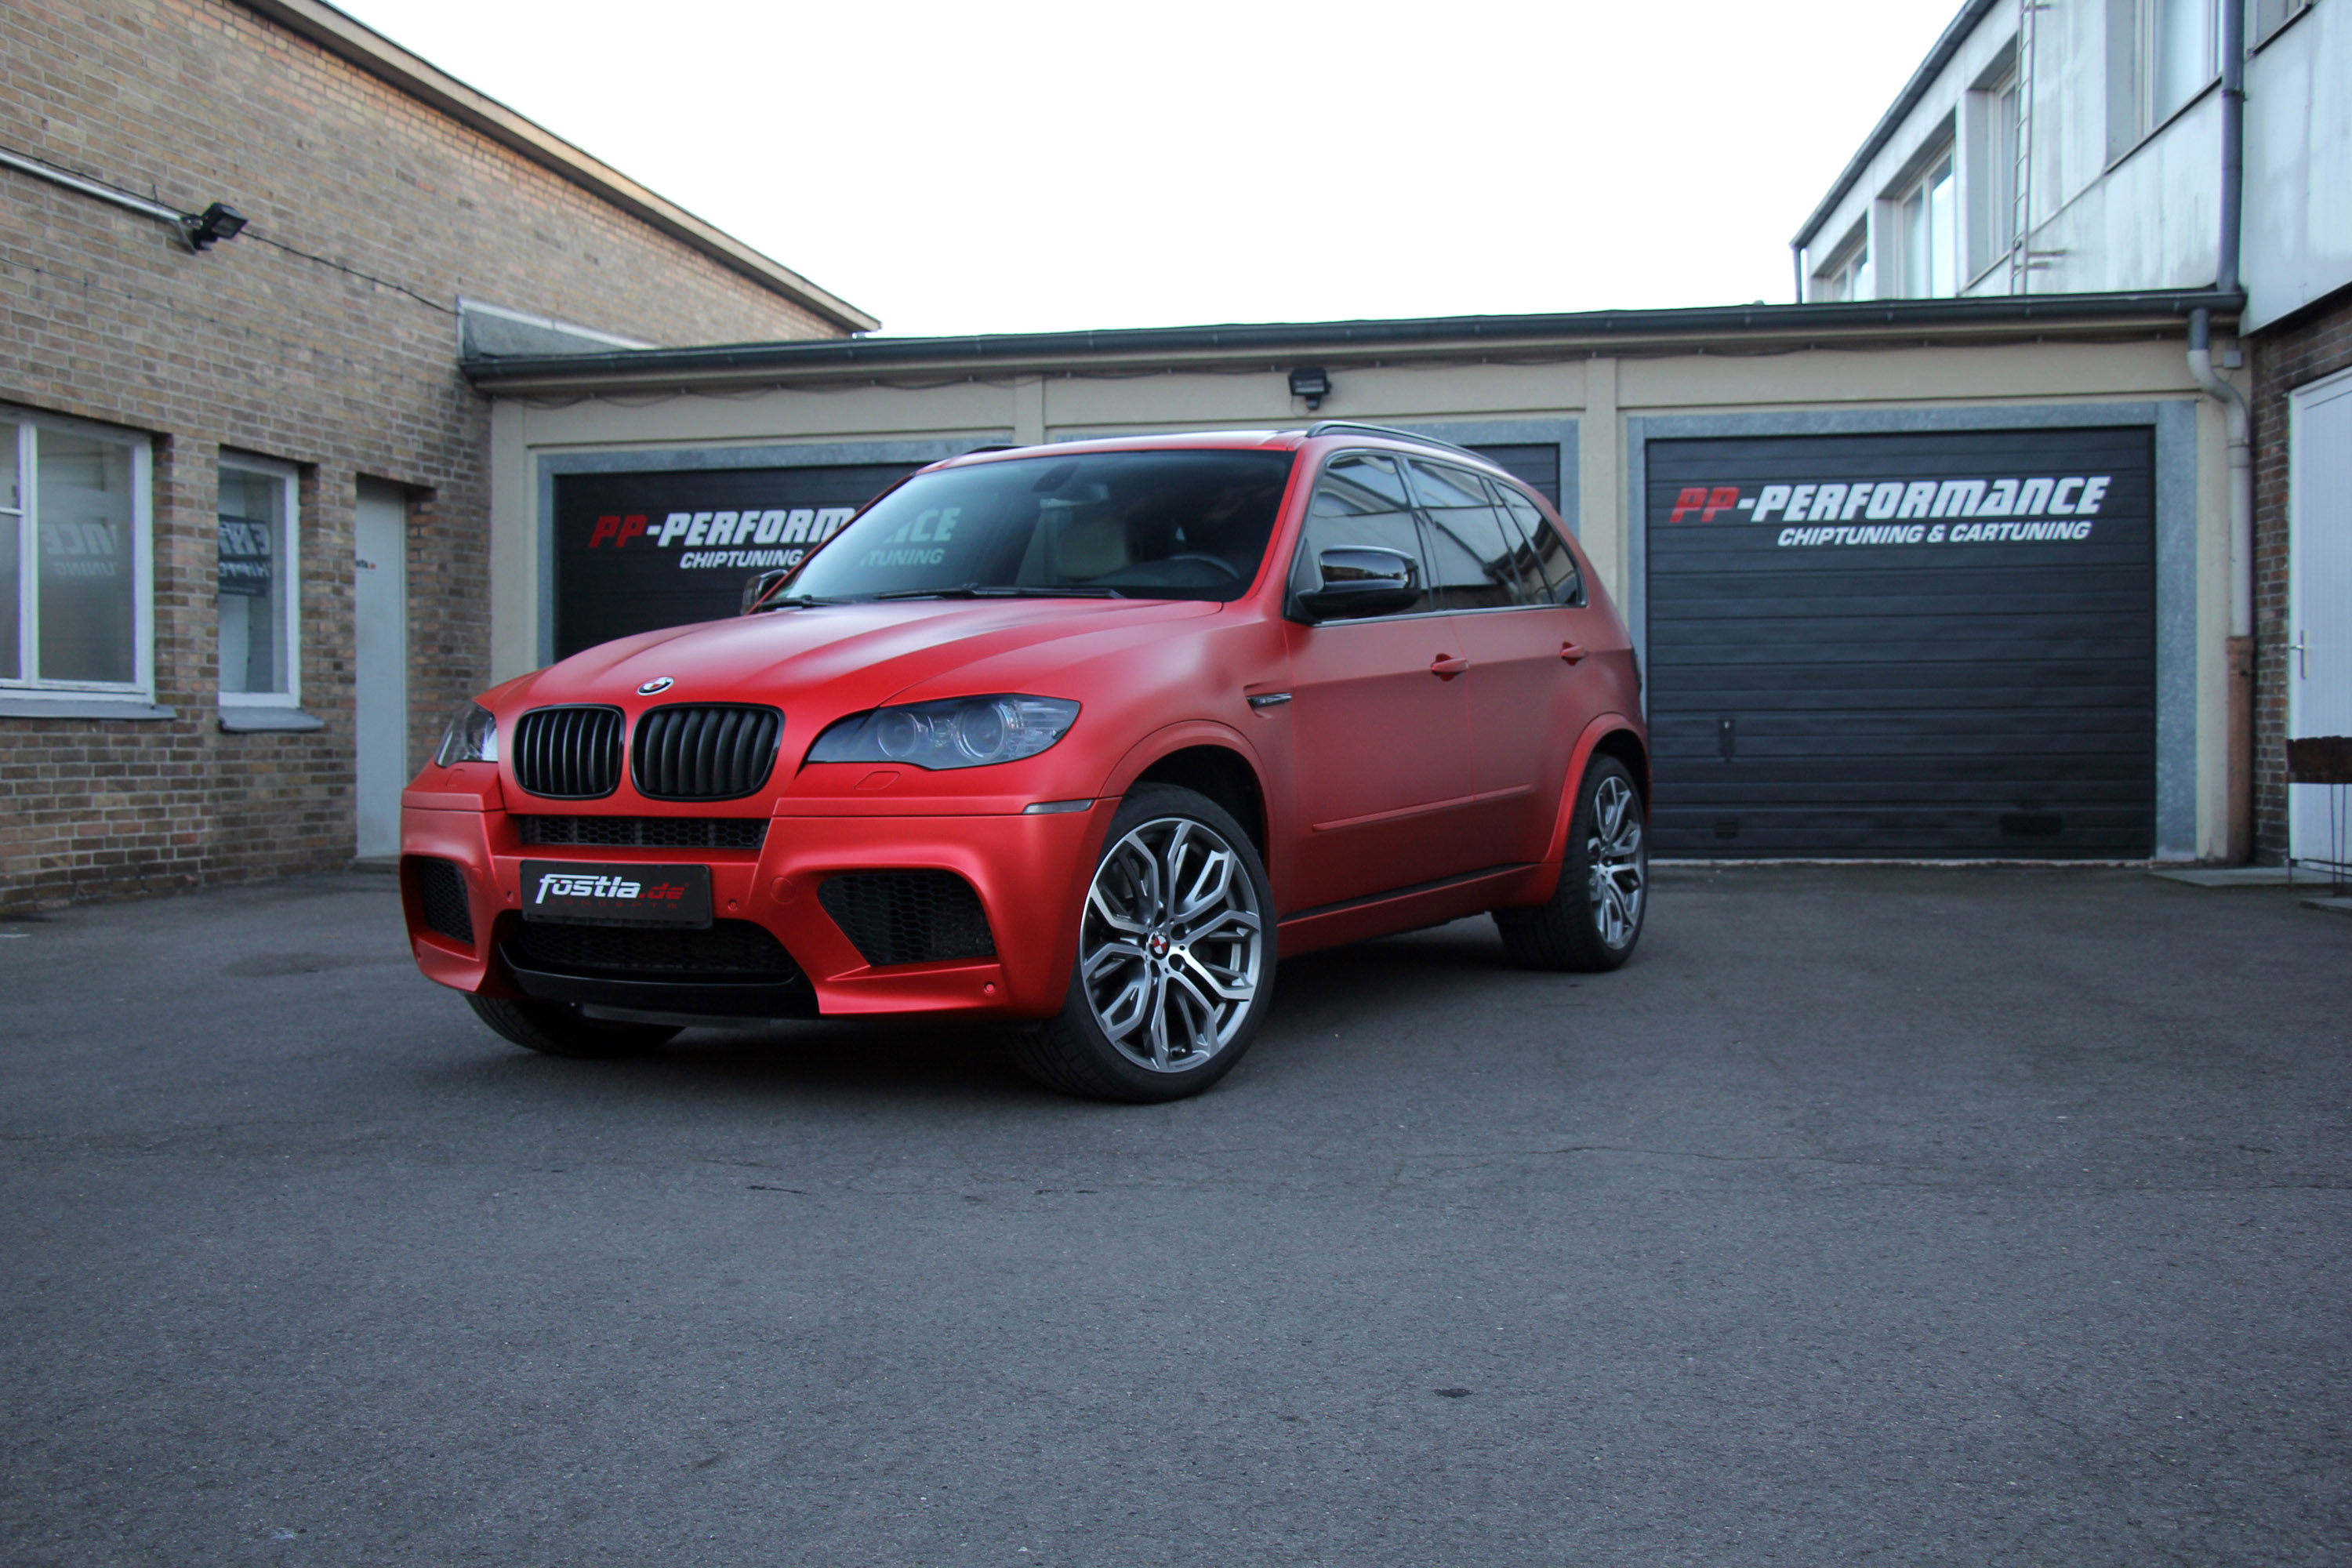 Fostla Bmw E70 X5m 650hp And 900nm